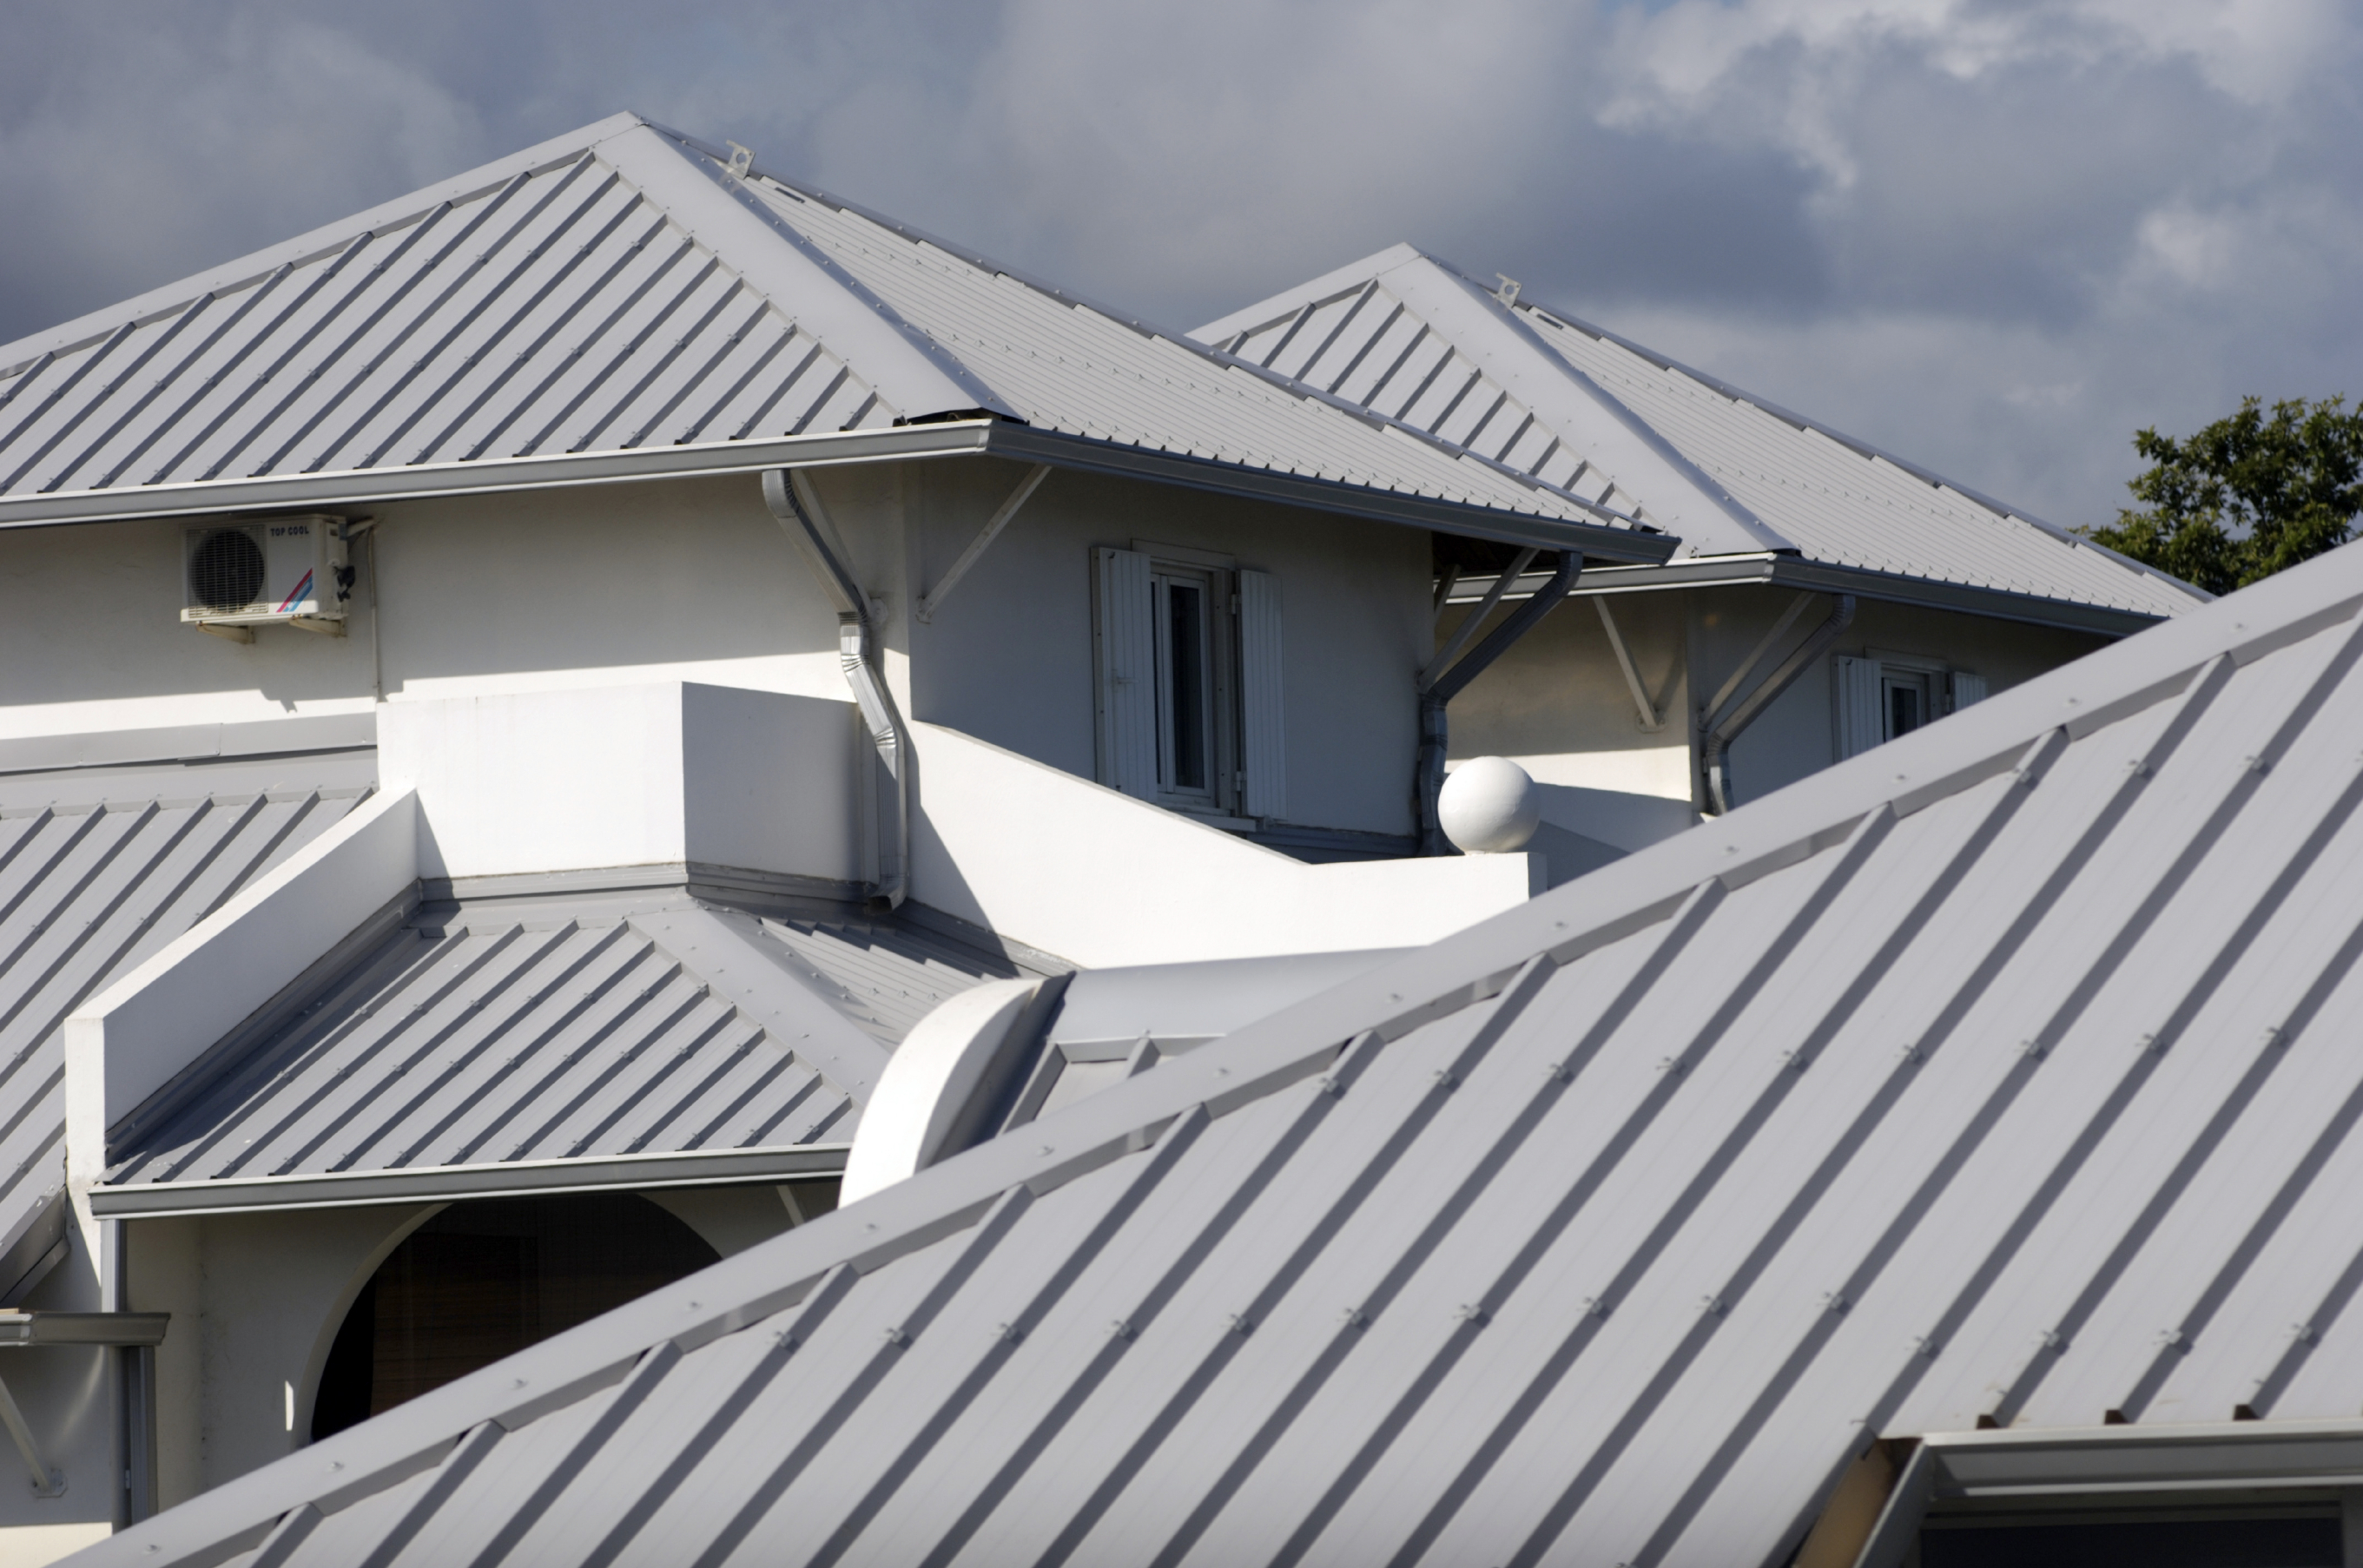 Cool Metal Roofs are a Hot Option for Homes | Central Insurance Companies